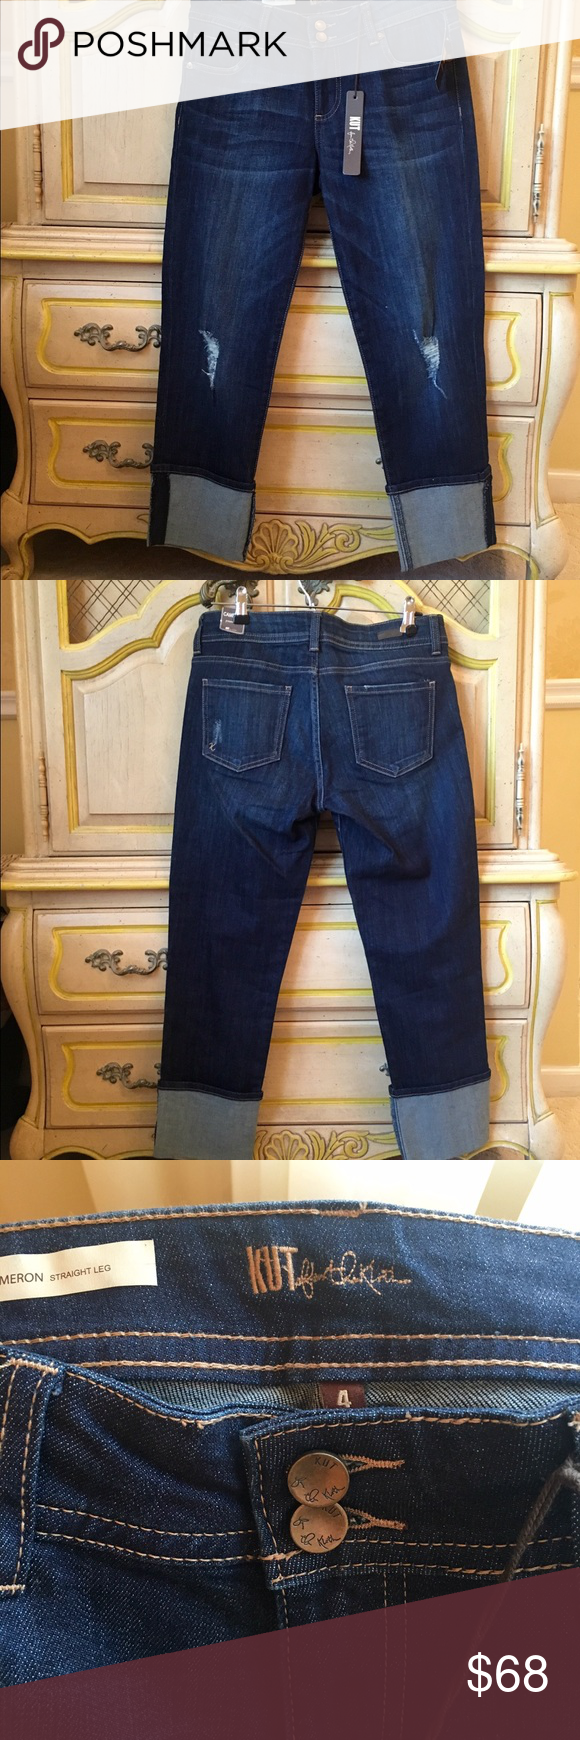 NWT KUT Jeans ♥️The Cameron Jean by KUT From the Kloth boasts a semi-relaxed fit and a straight leg that brings the easygoing feel you crave.  A dark wash with a deep indigo hue. Lightly applied 3-D whiskers, distressed details and the subtlest hand sanding finish the look. Kut from the Kloth Jeans Straight Leg